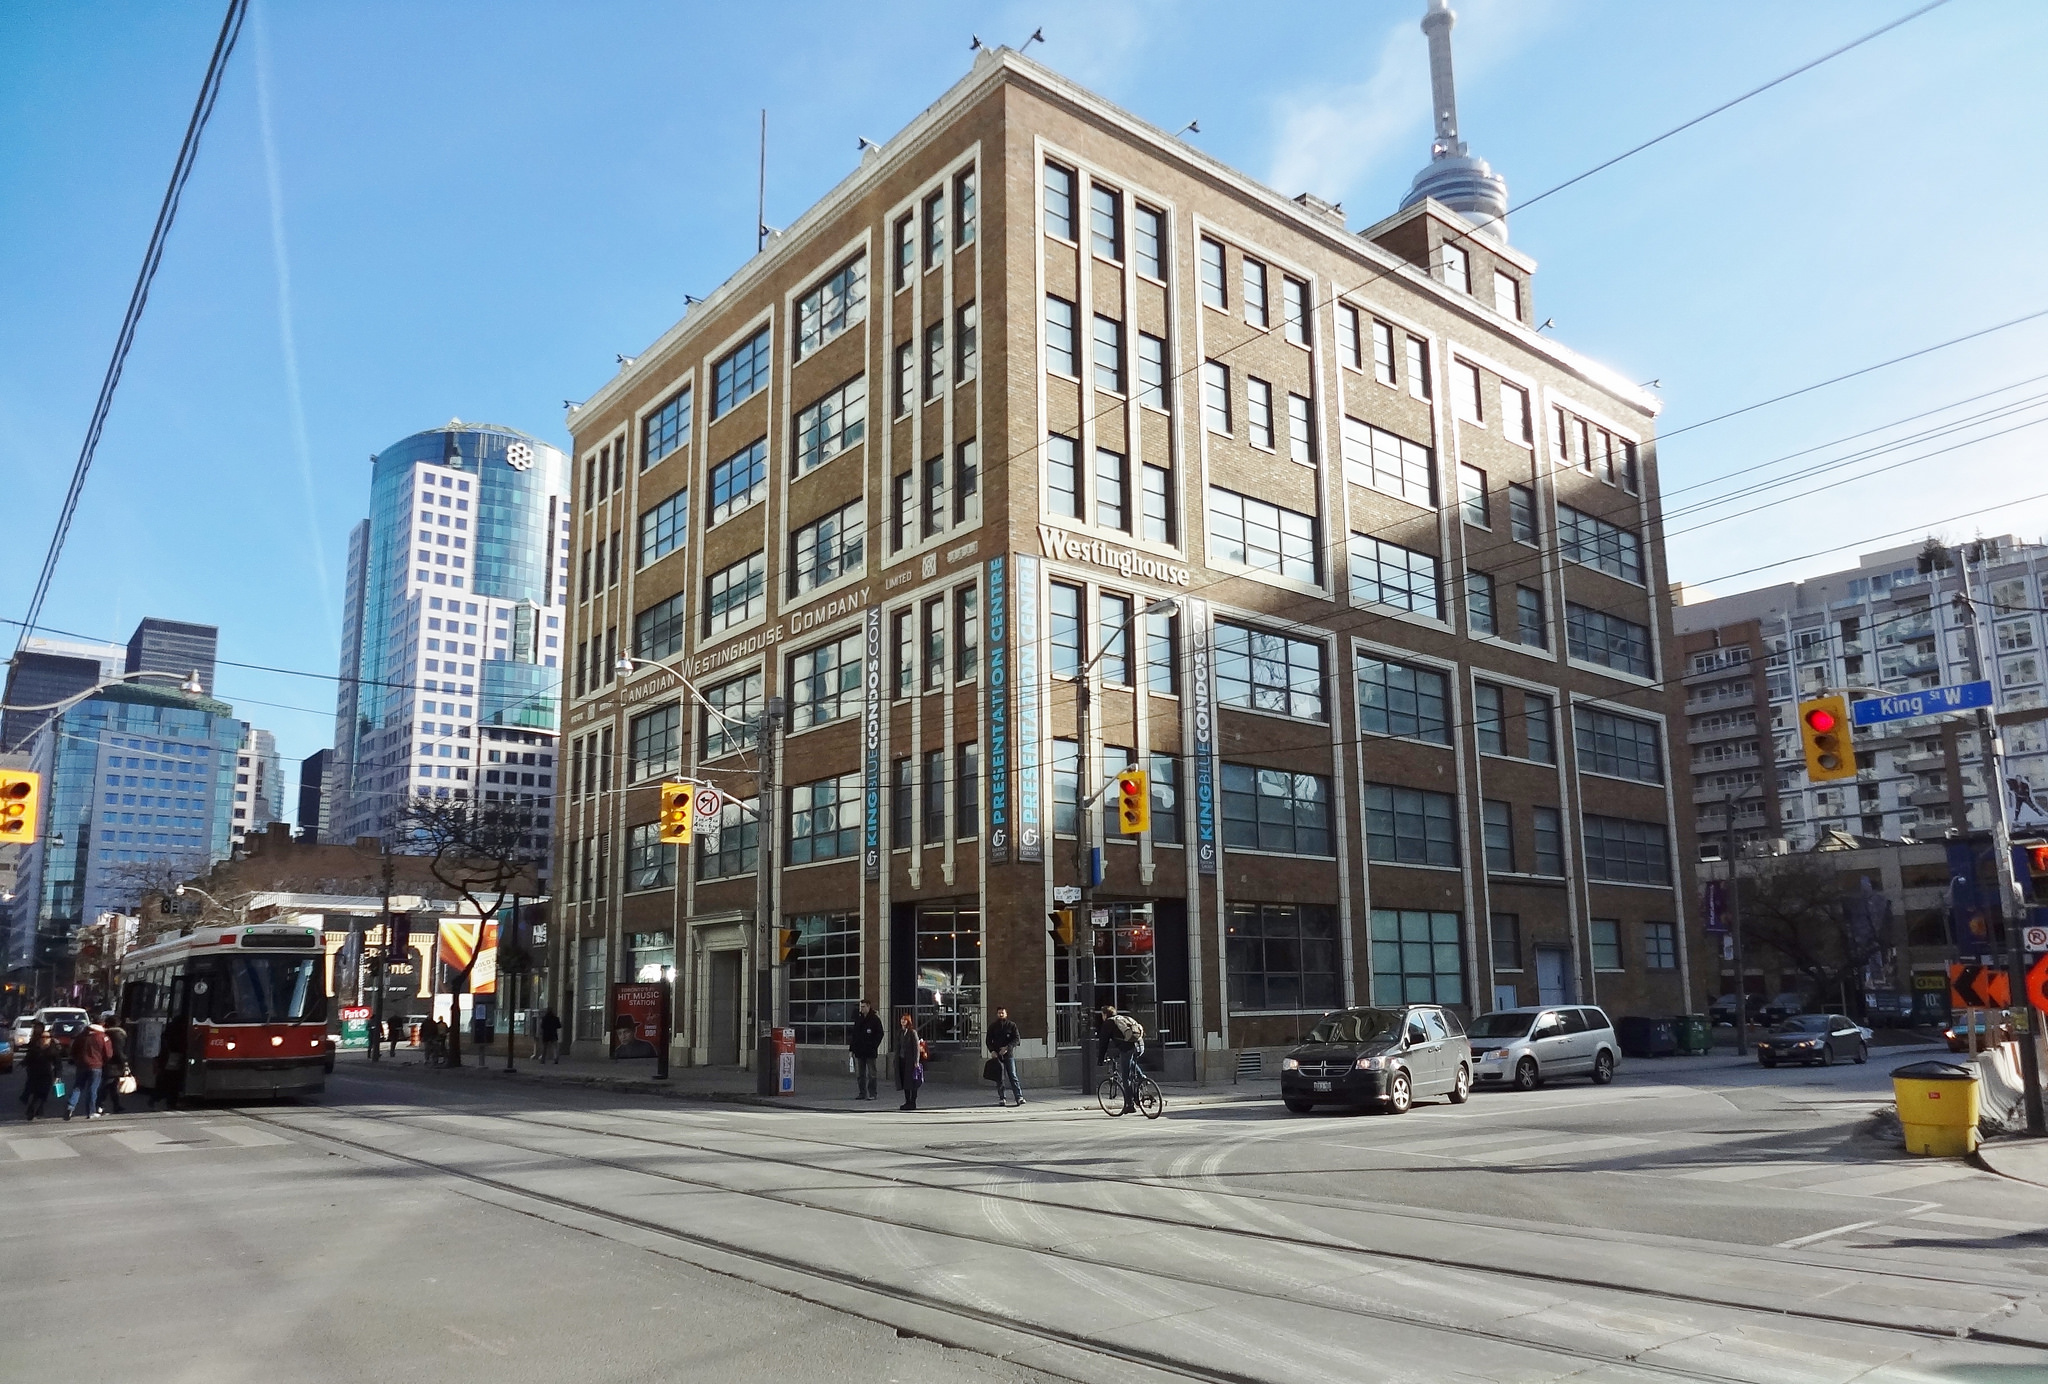 Photo of Westinghouse building on King West.